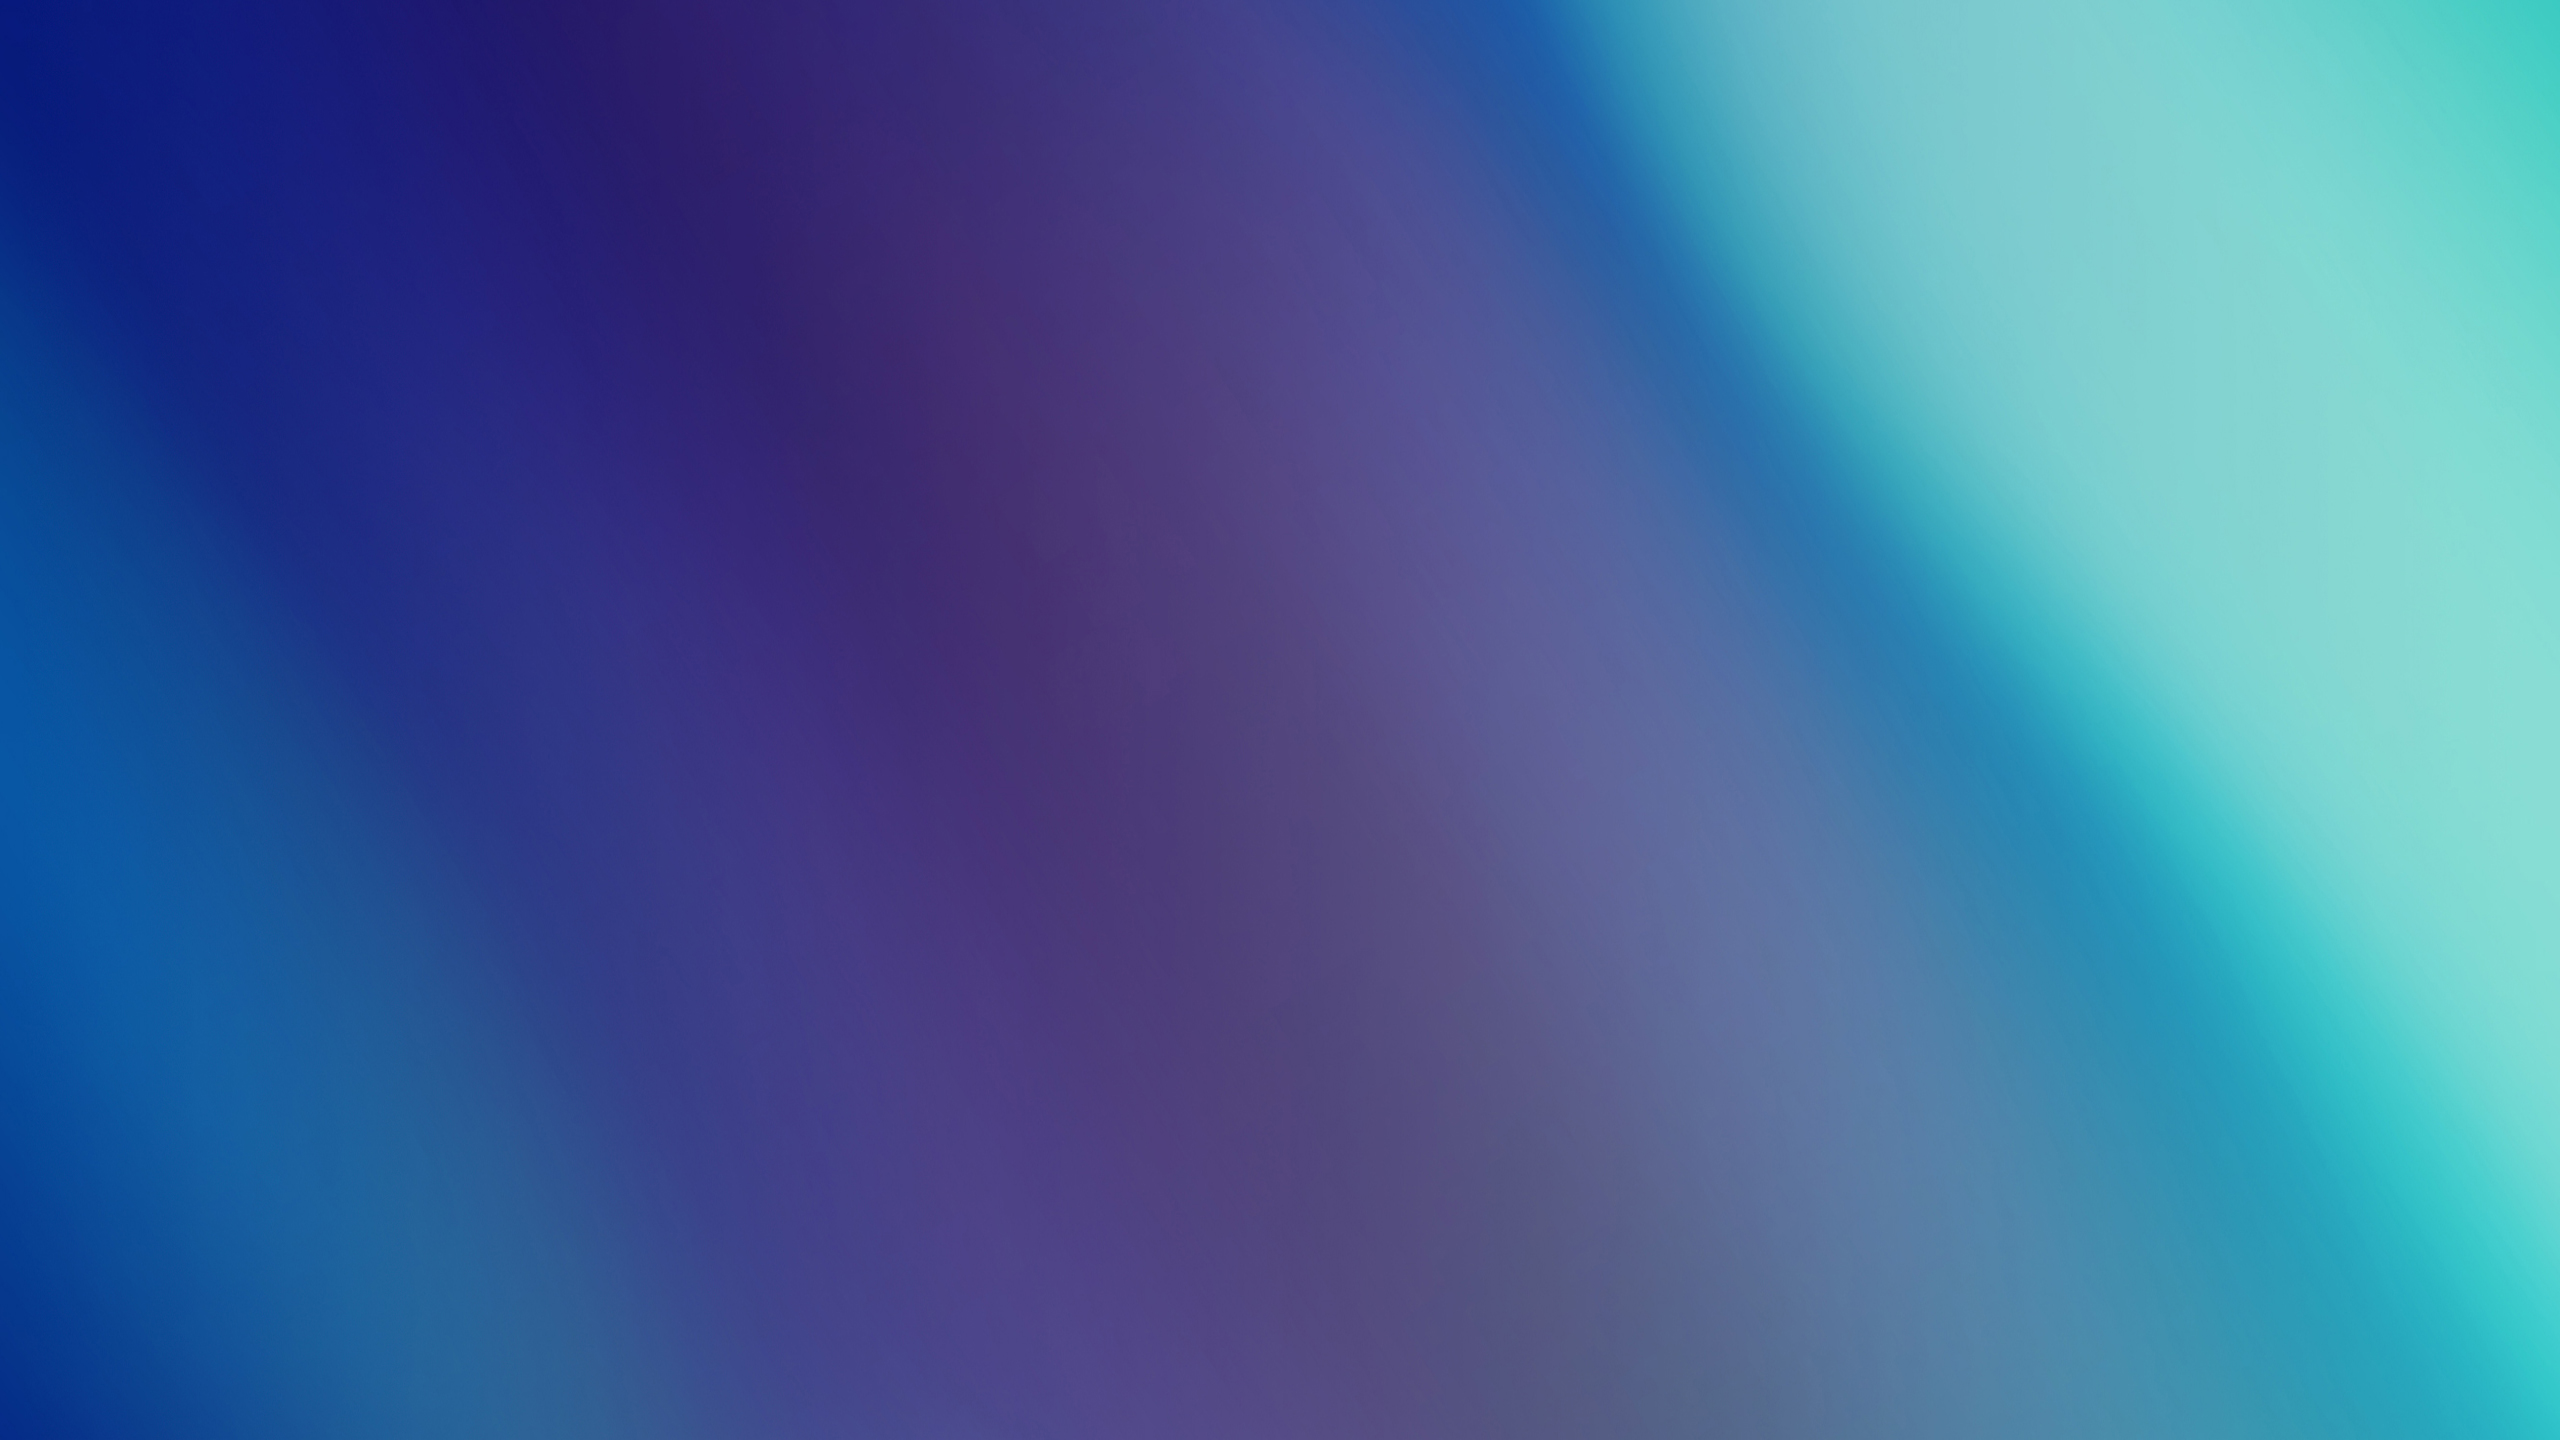 Smooth Blue Colors Minimal Wallpaper Hd Minimalist 4k Wallpapers Images Photos And Background Tons of awesome blue minimalist wallpapers to download for free. smooth blue colors minimal wallpaper